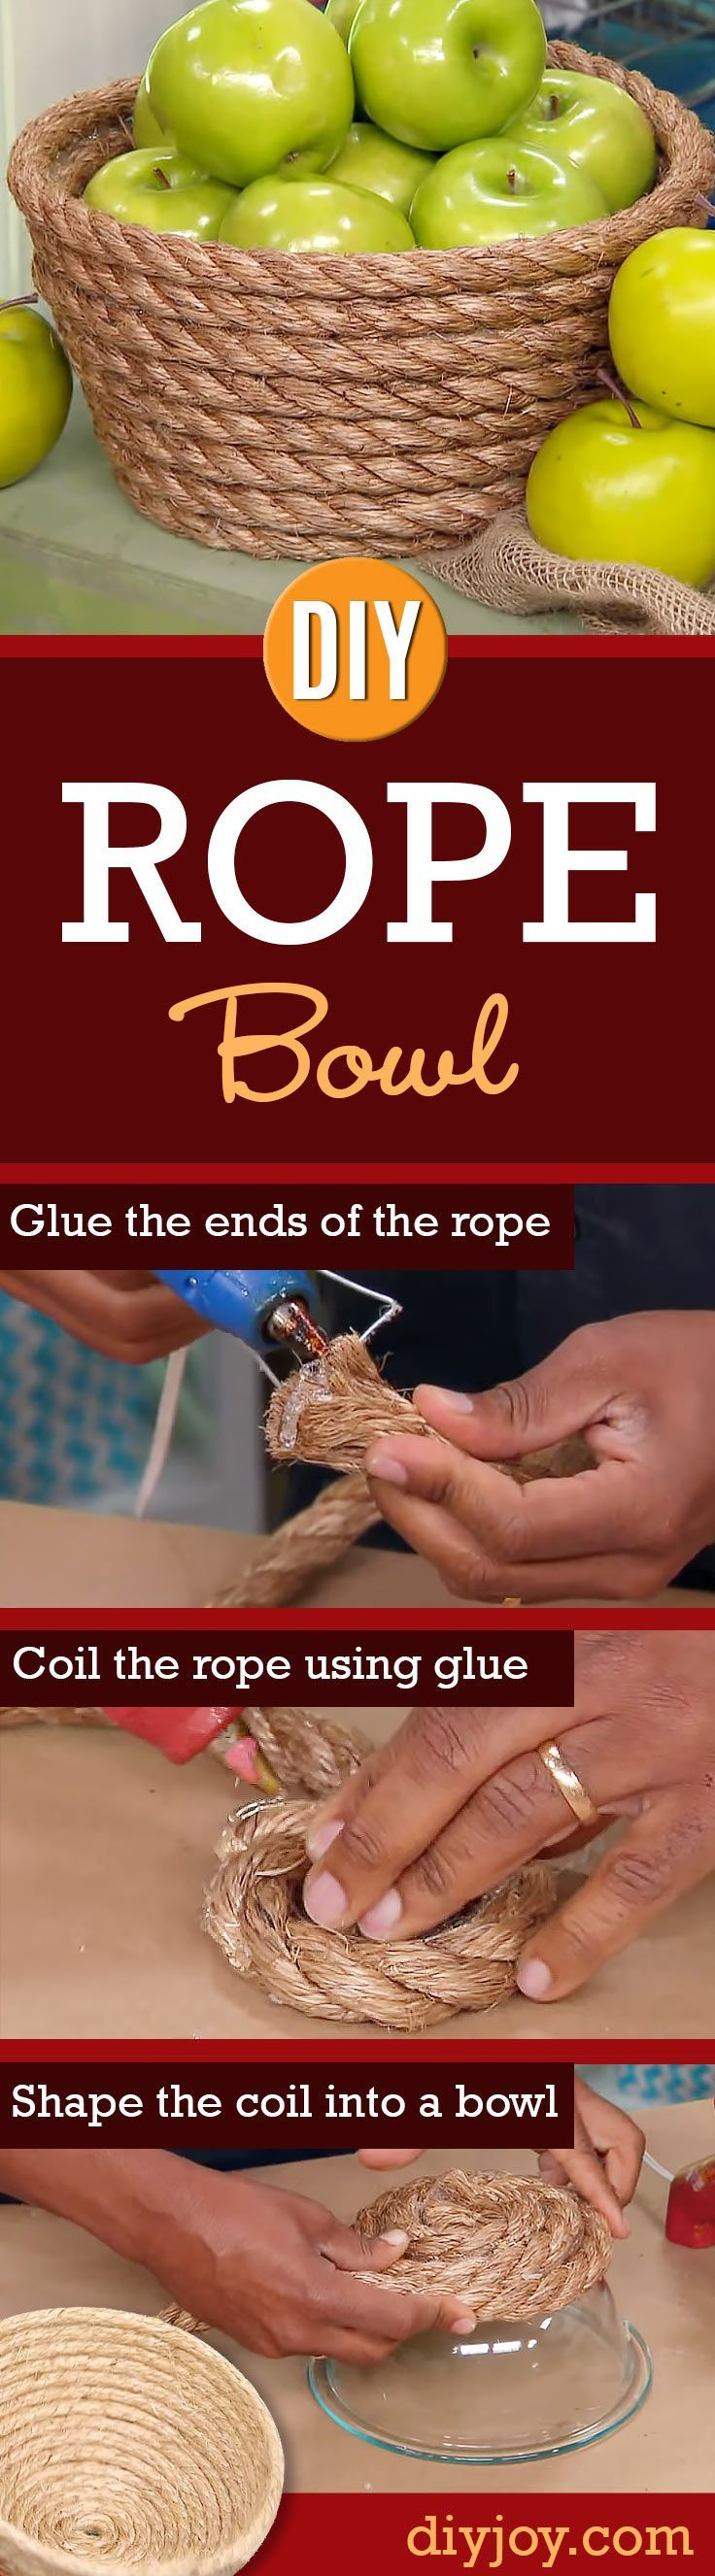 Easy Home Decor Projects and Cheap DIY Crafts Ideas that Make Cool Homemade Gifts - DIY Rope Bowl - How To and Step By Step Instructions